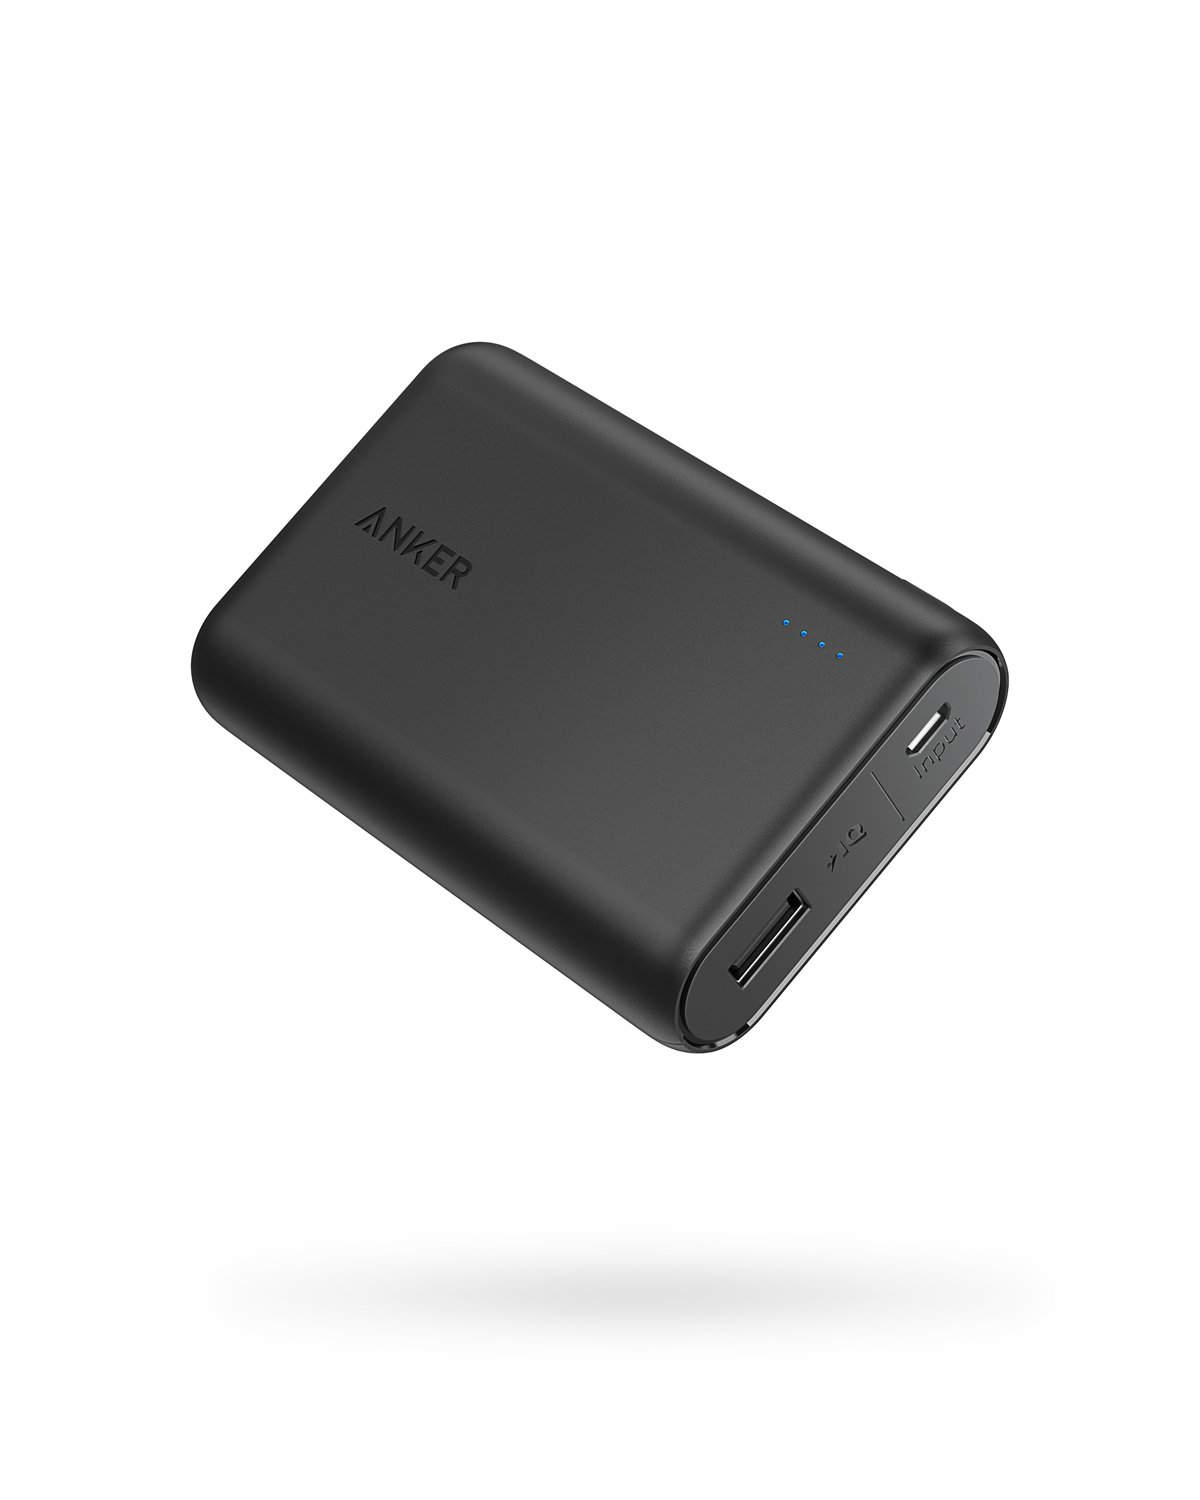 The Anker PowerCore 10000 Portable Charger travel product recommended by Andrew Chan on Lifney.